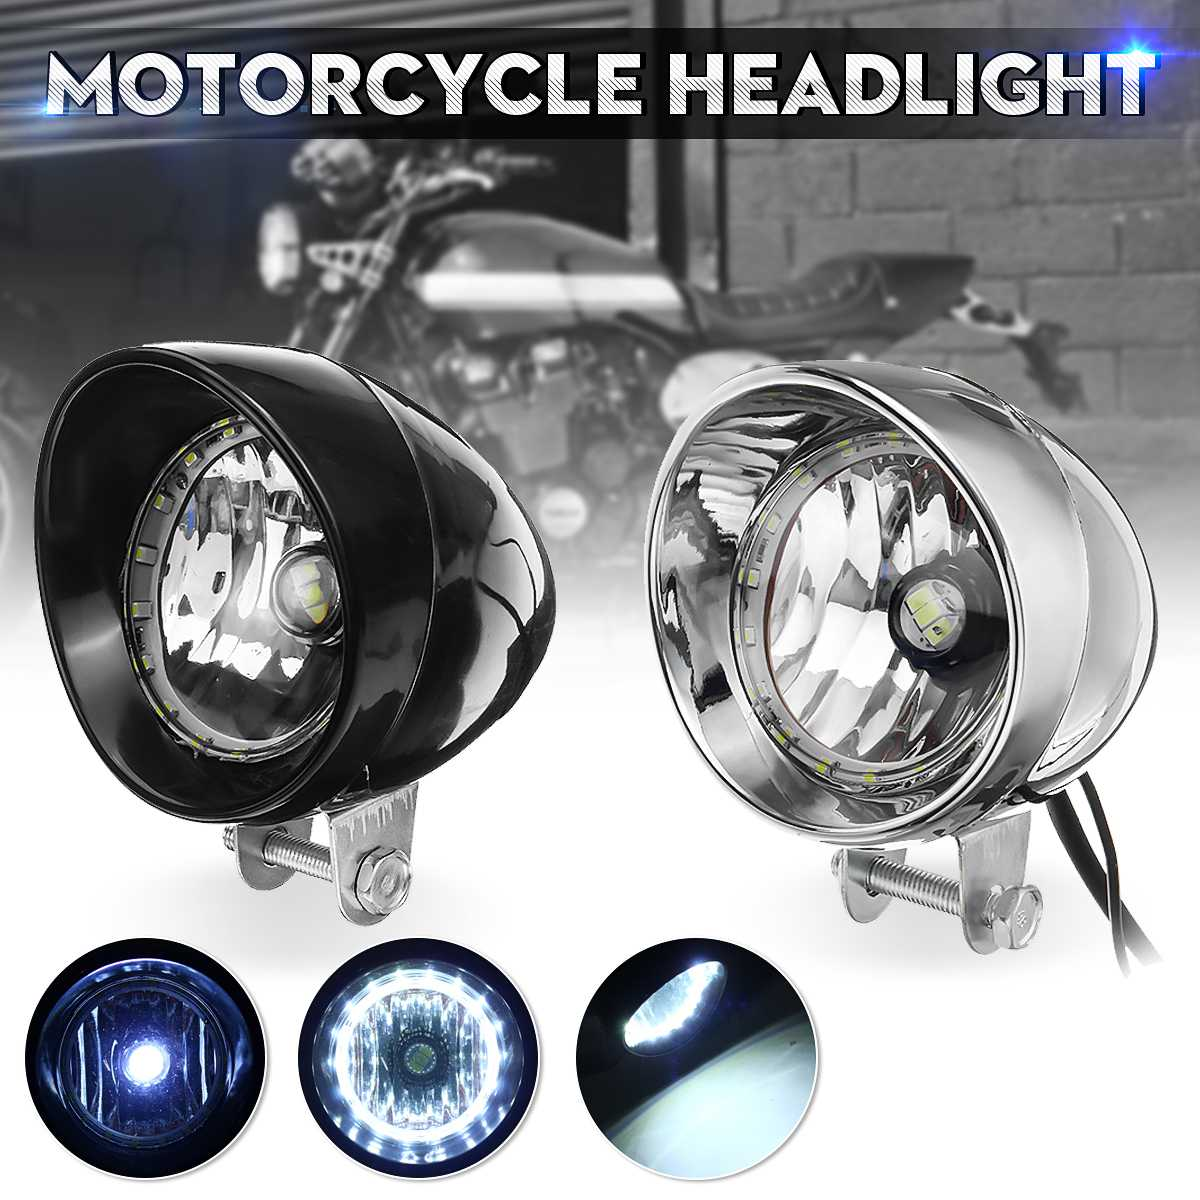 Black Chrome LED Motorcycle Universal Bullet Headlights High Low Beam Head Light Lamp